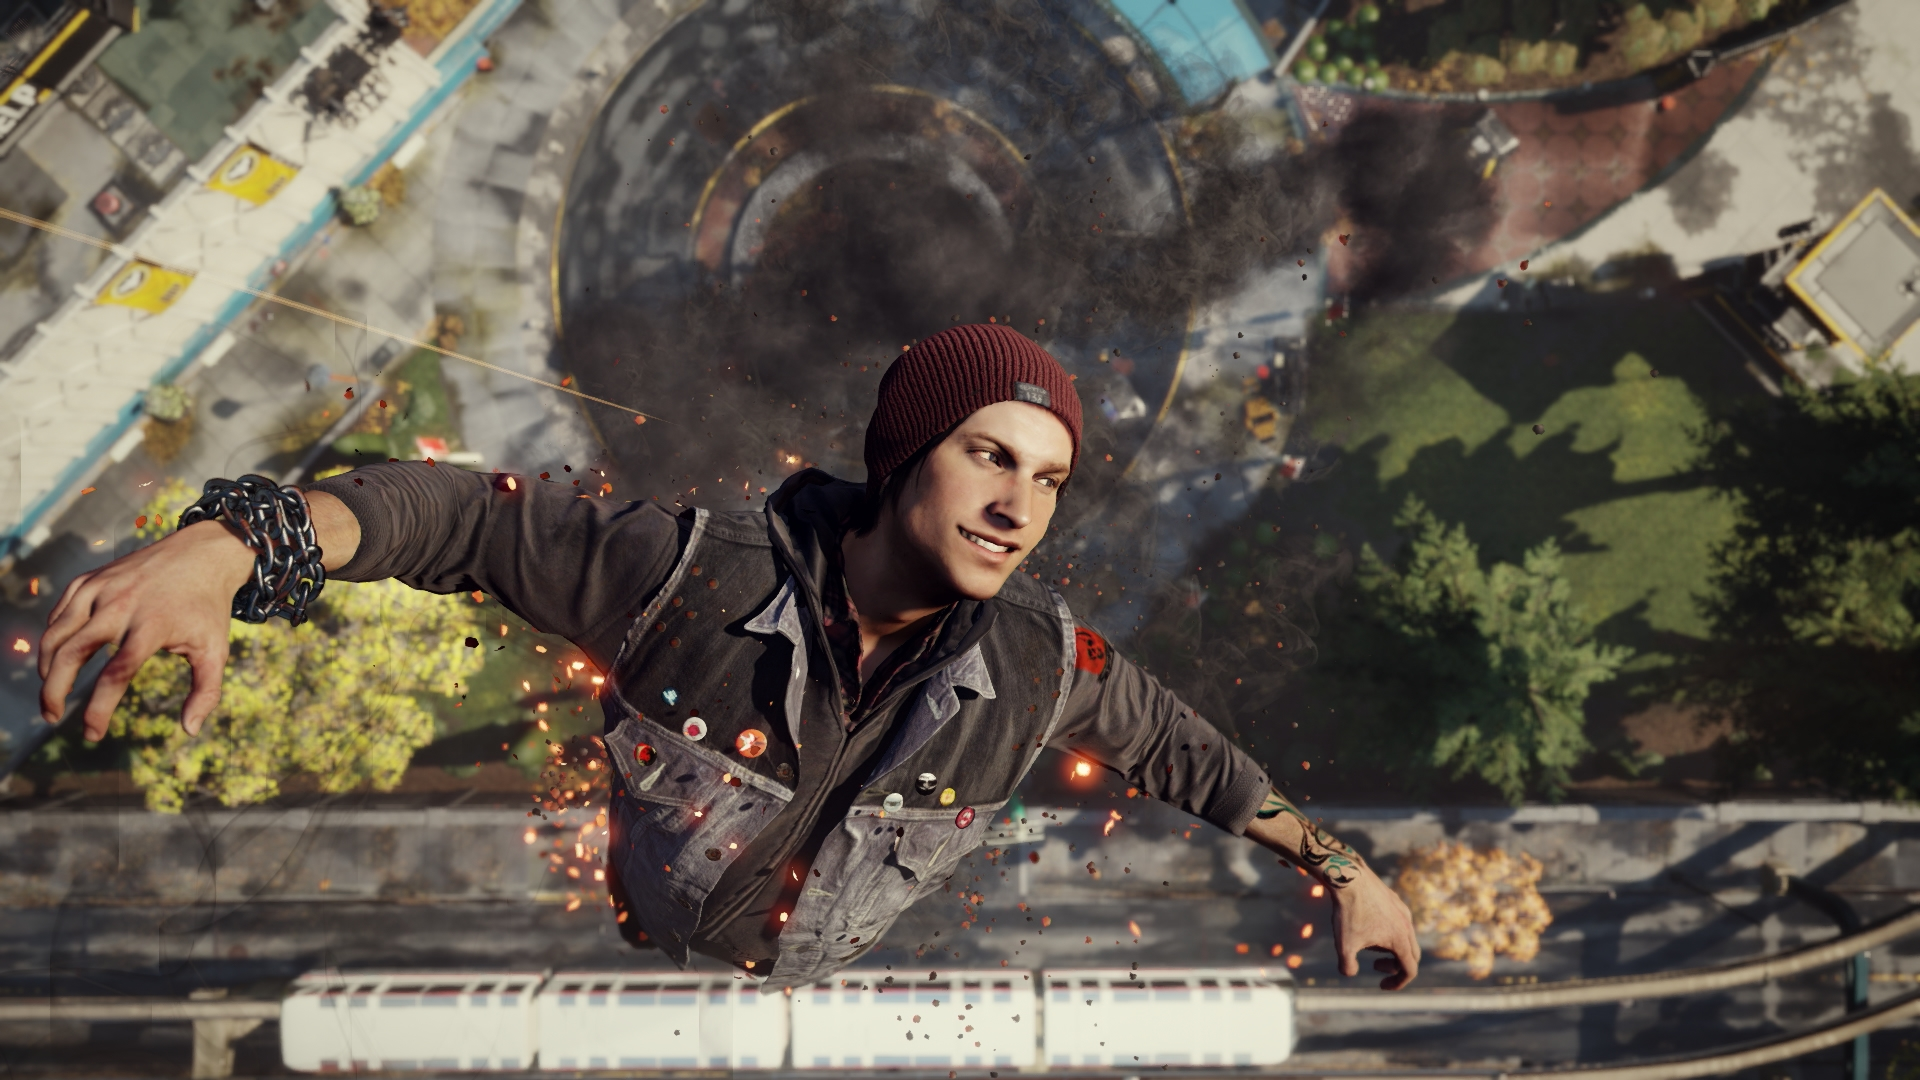 Infamous : second son 노멀난이도 선루트 ..